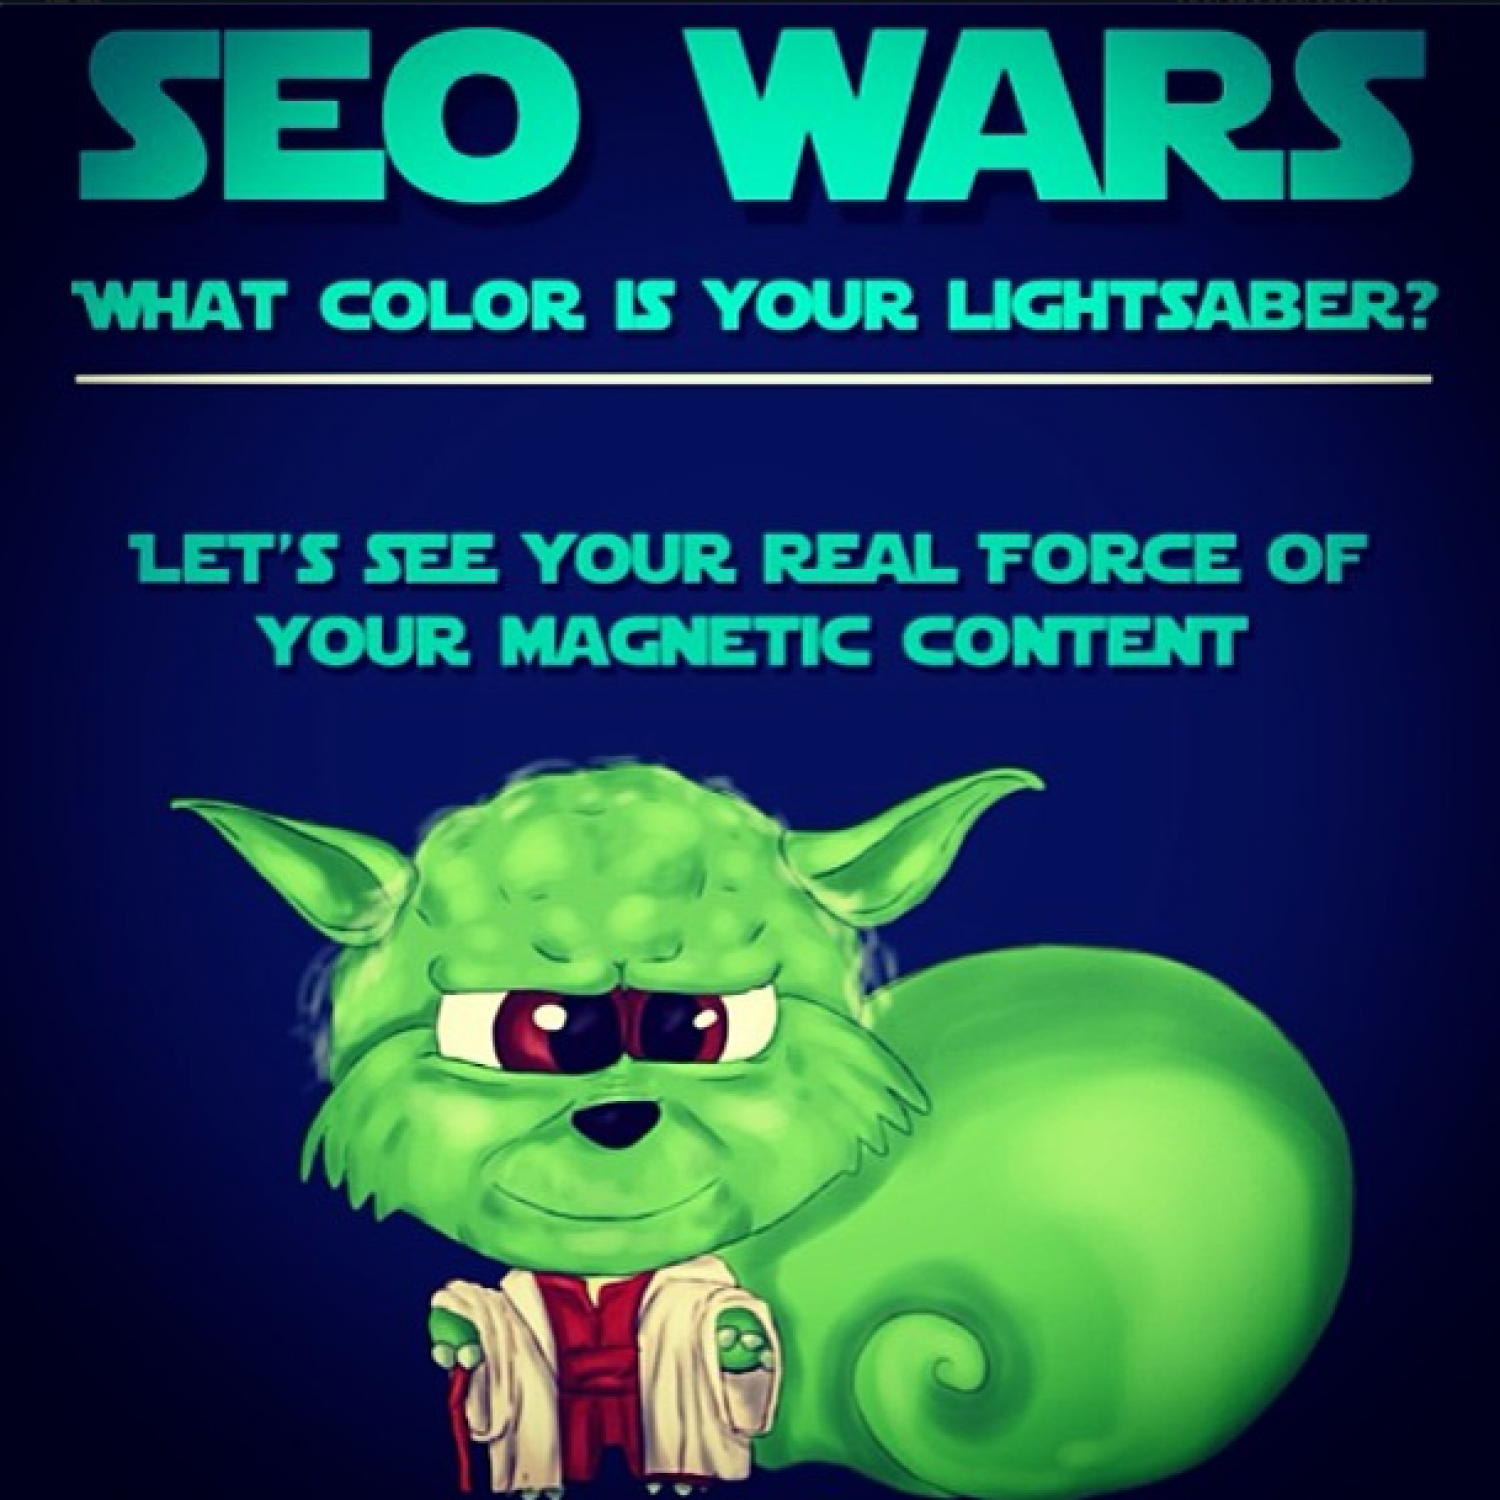 SEO Wars - What Color is Your LightSaber? Infographic